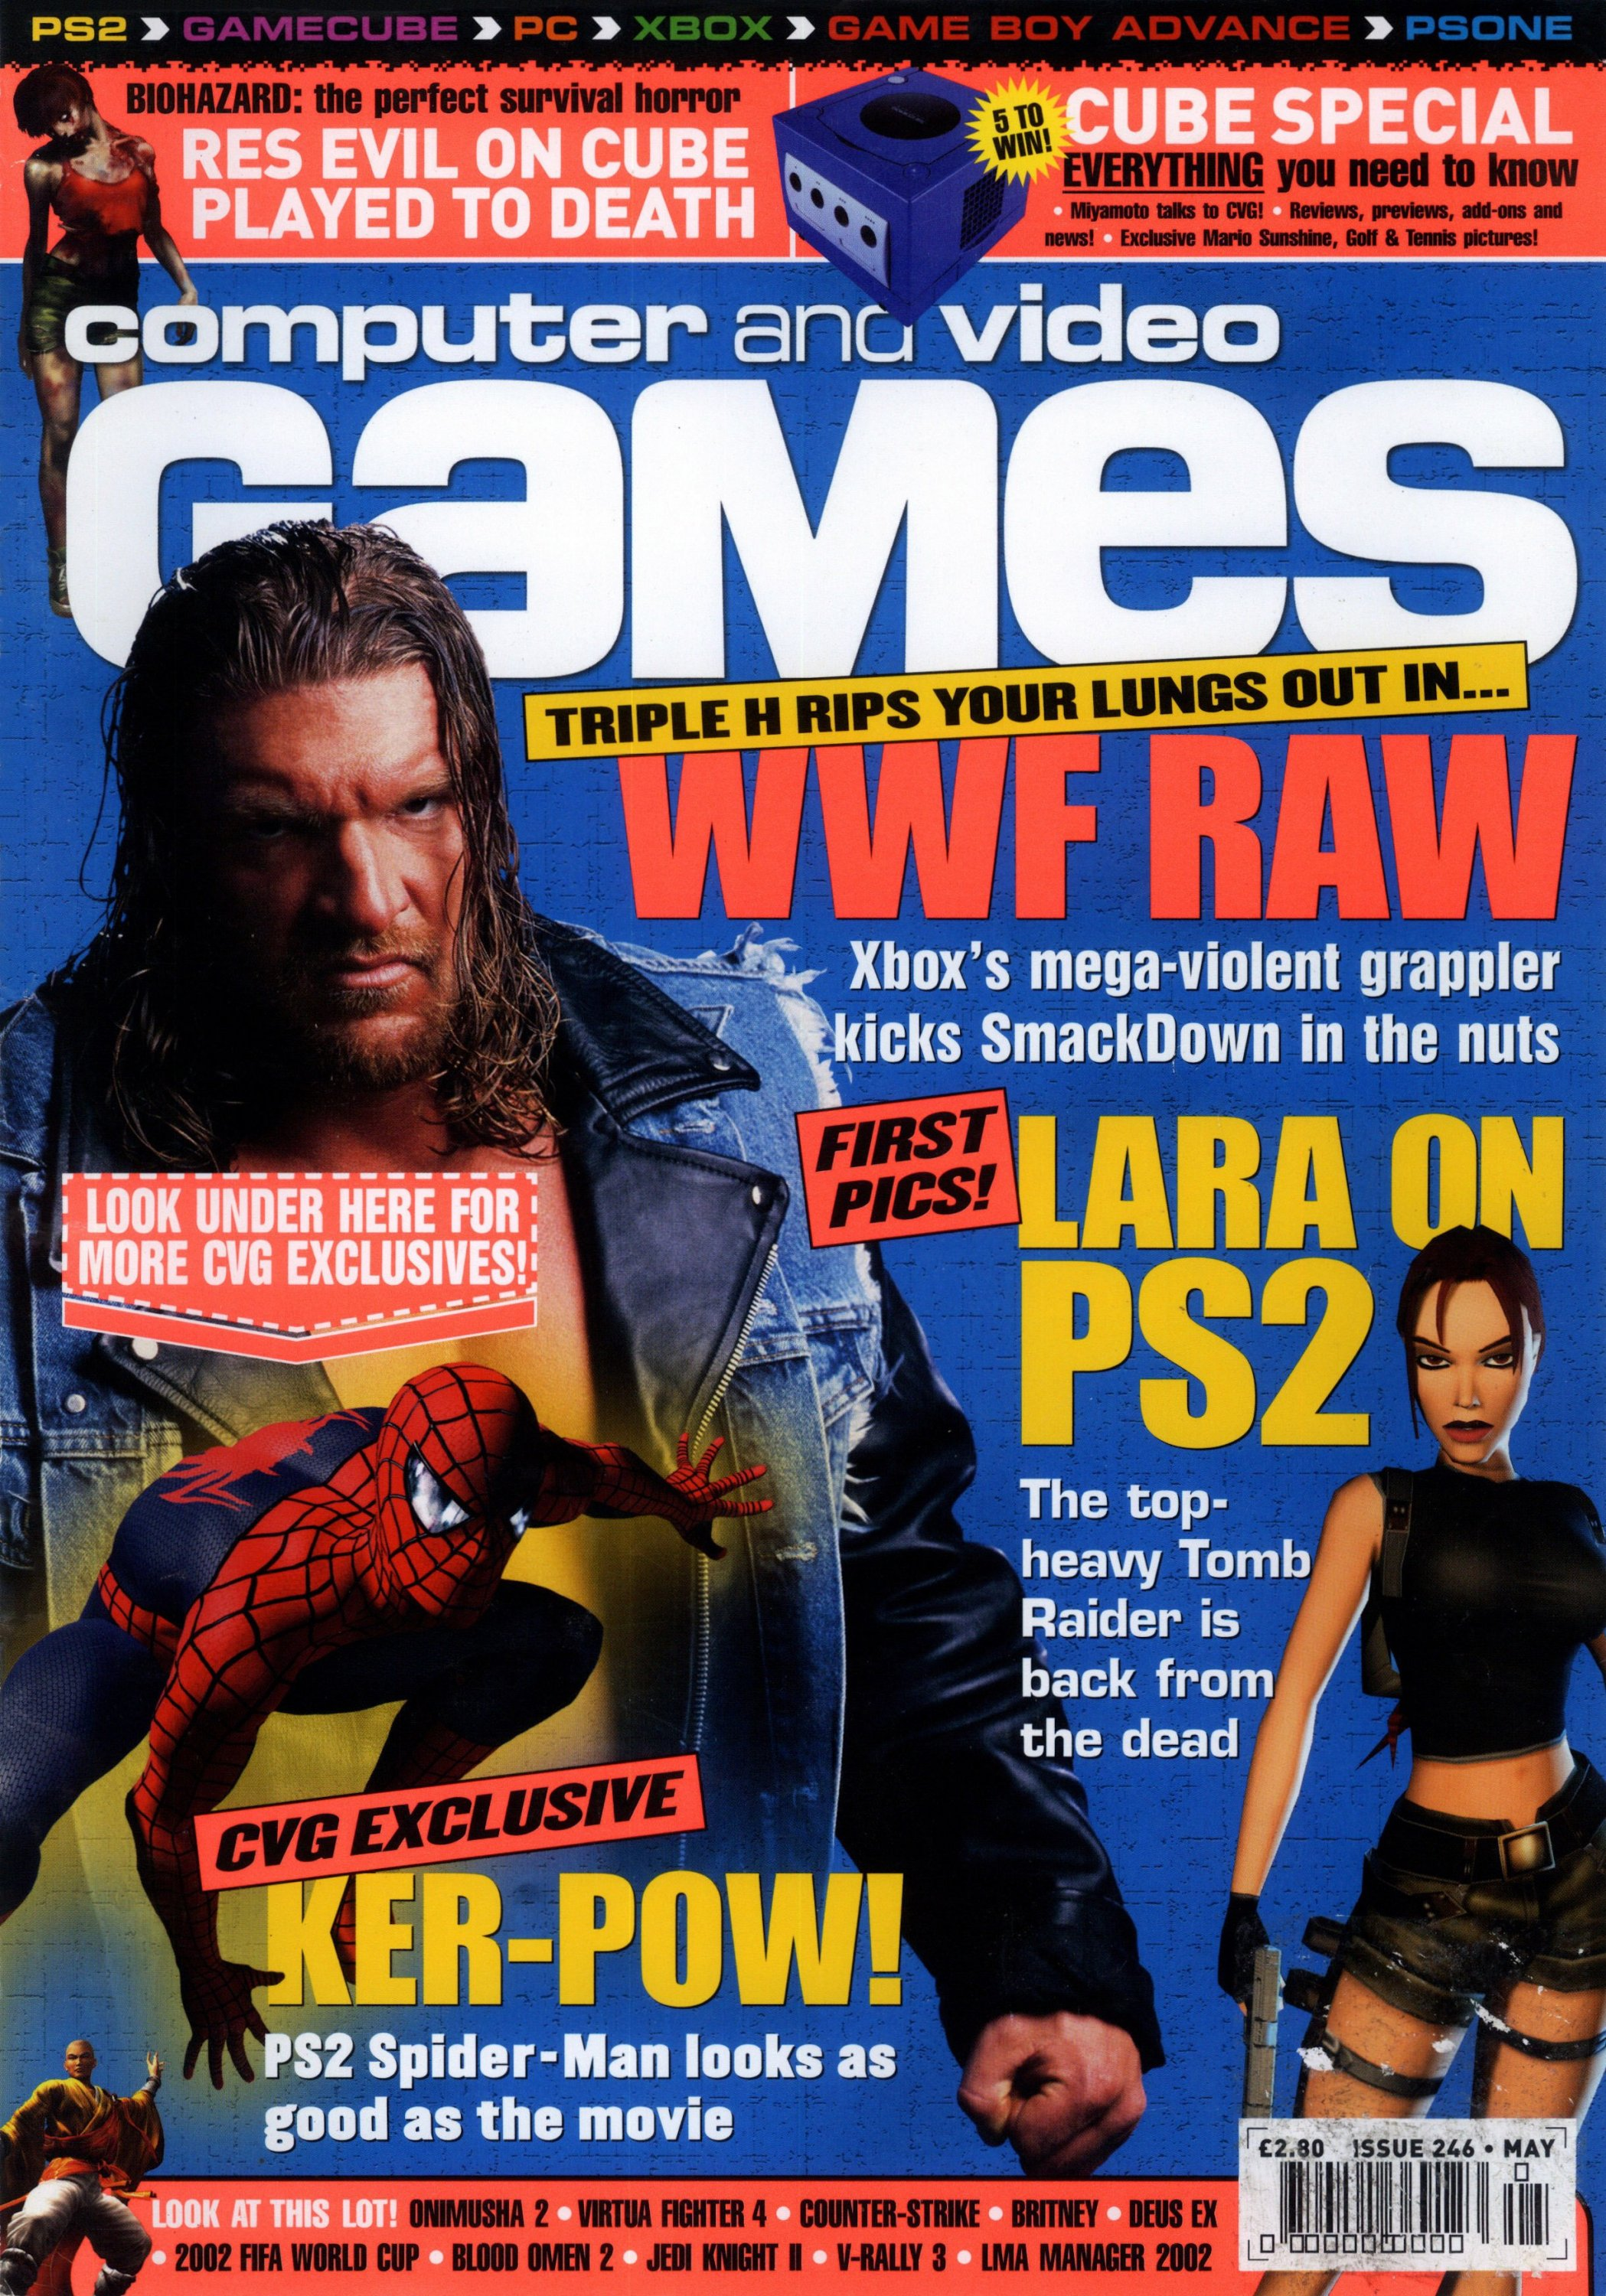 Computer & Video Games Issue 246